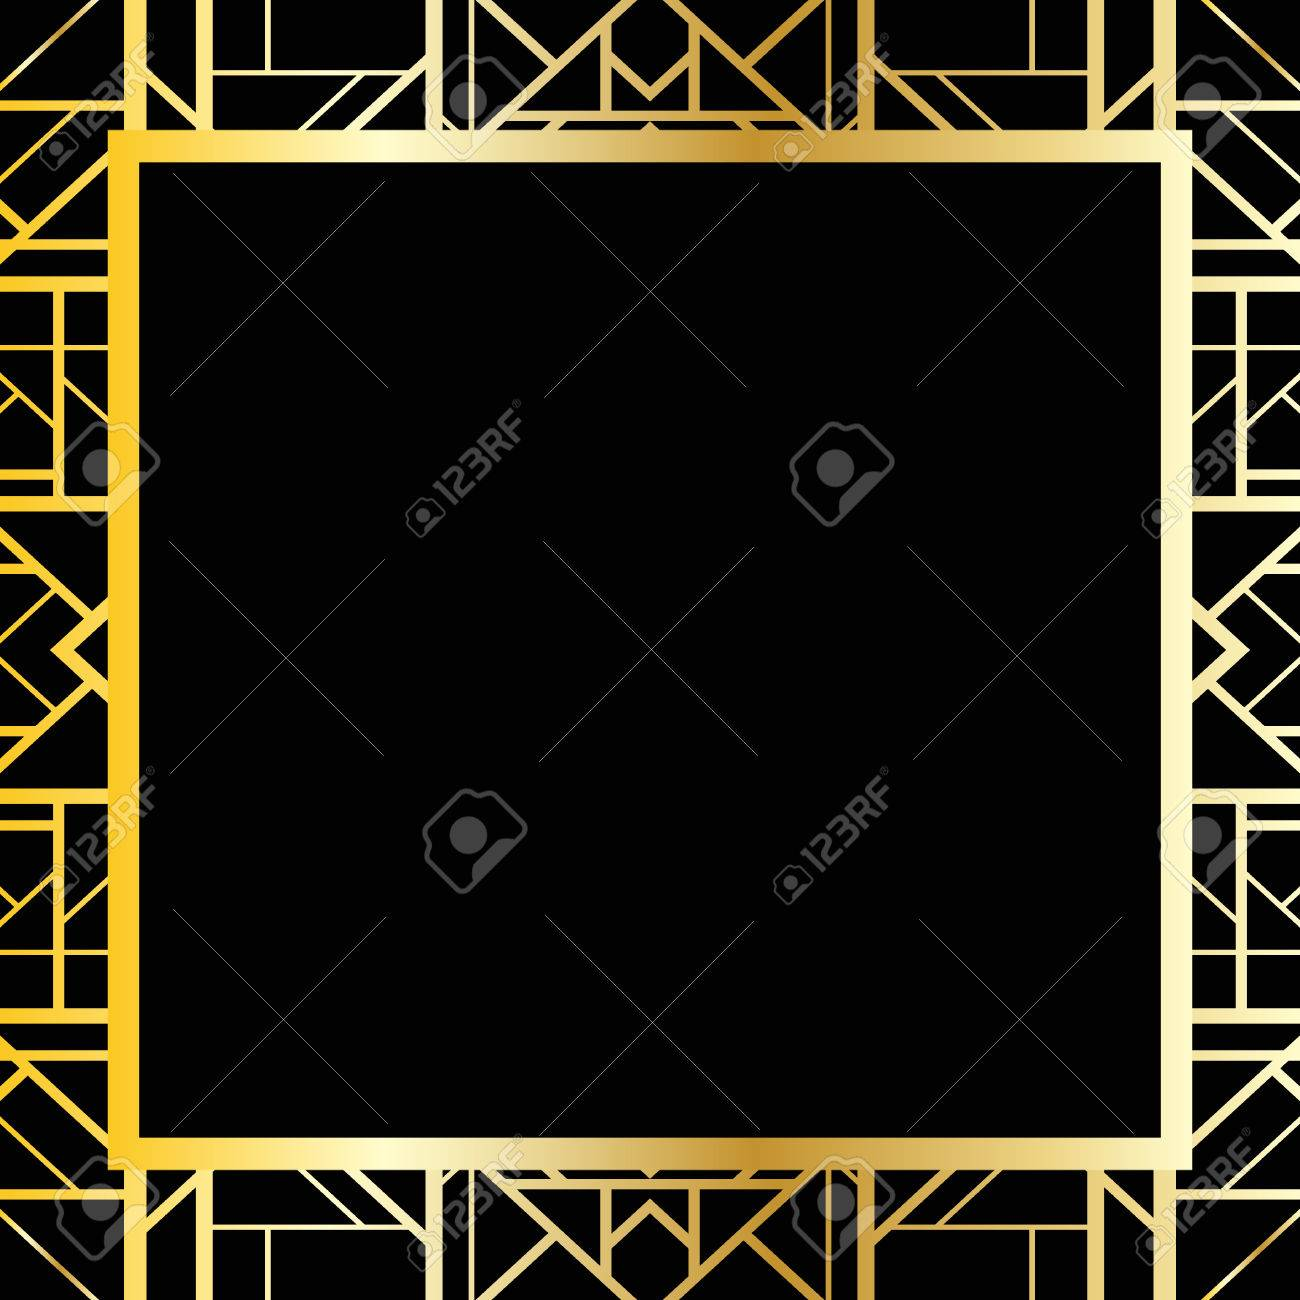 Art Deco Geometric Frame 1920s Style Royalty Free Cliparts